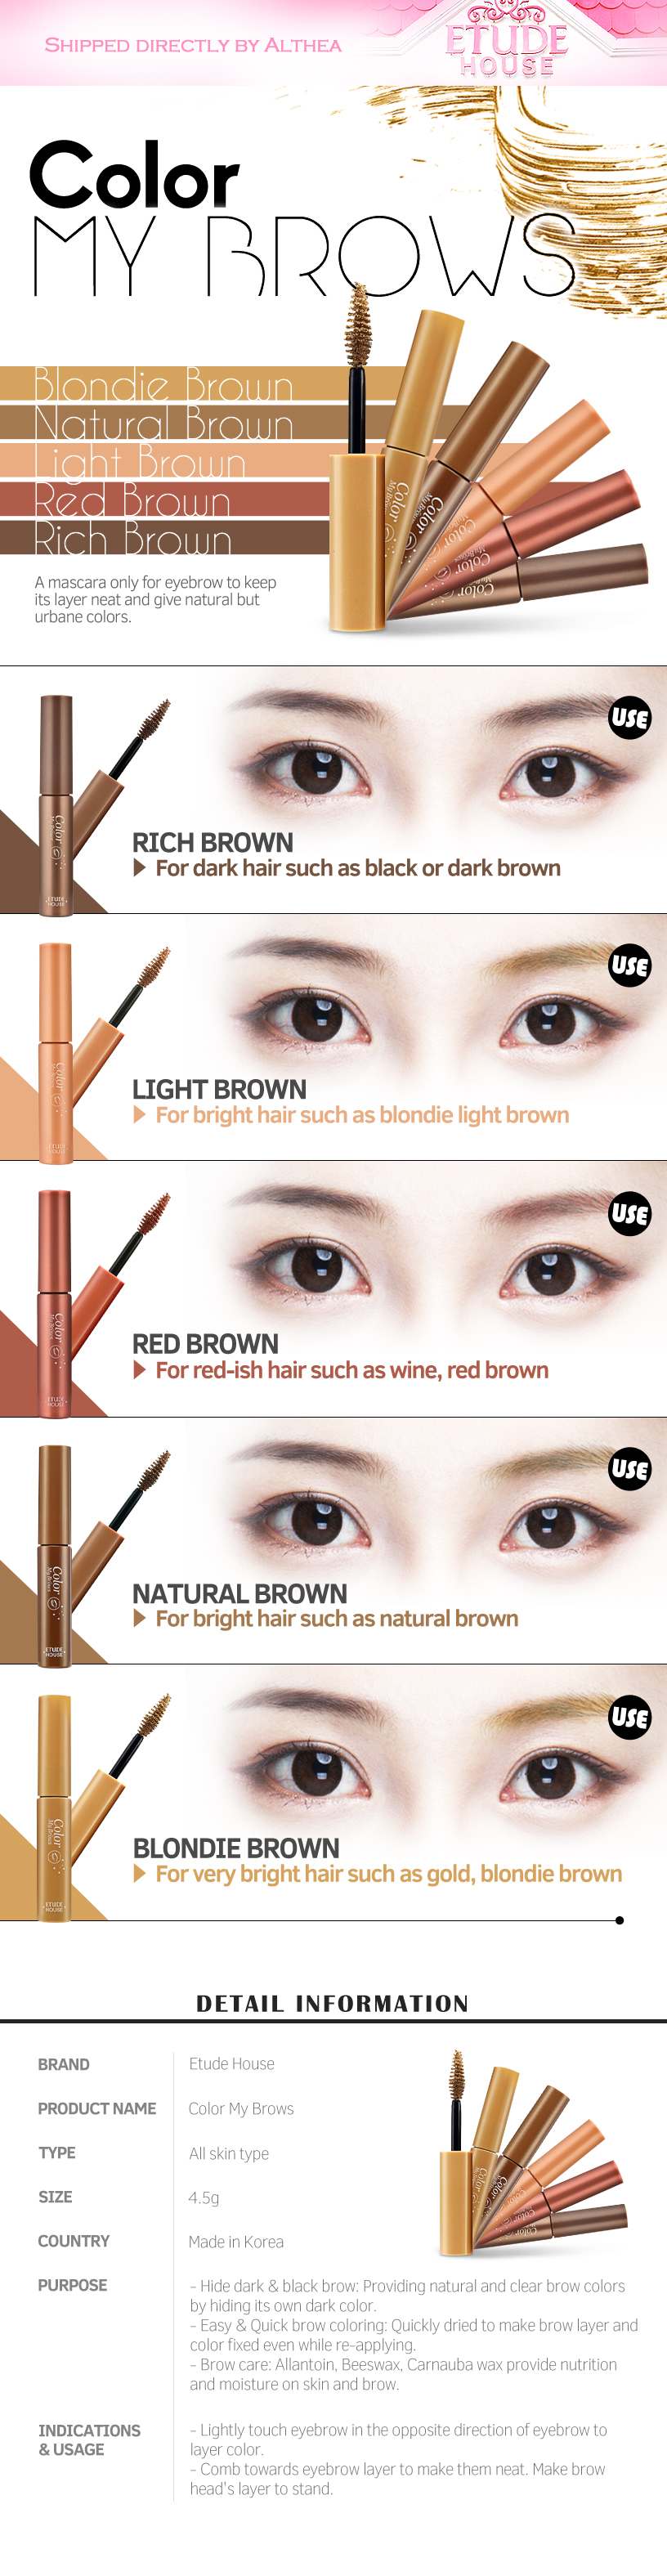 02452a54229 Buy ETUDE HOUSE Color My Brows (4.5g) at Althea Malaysia